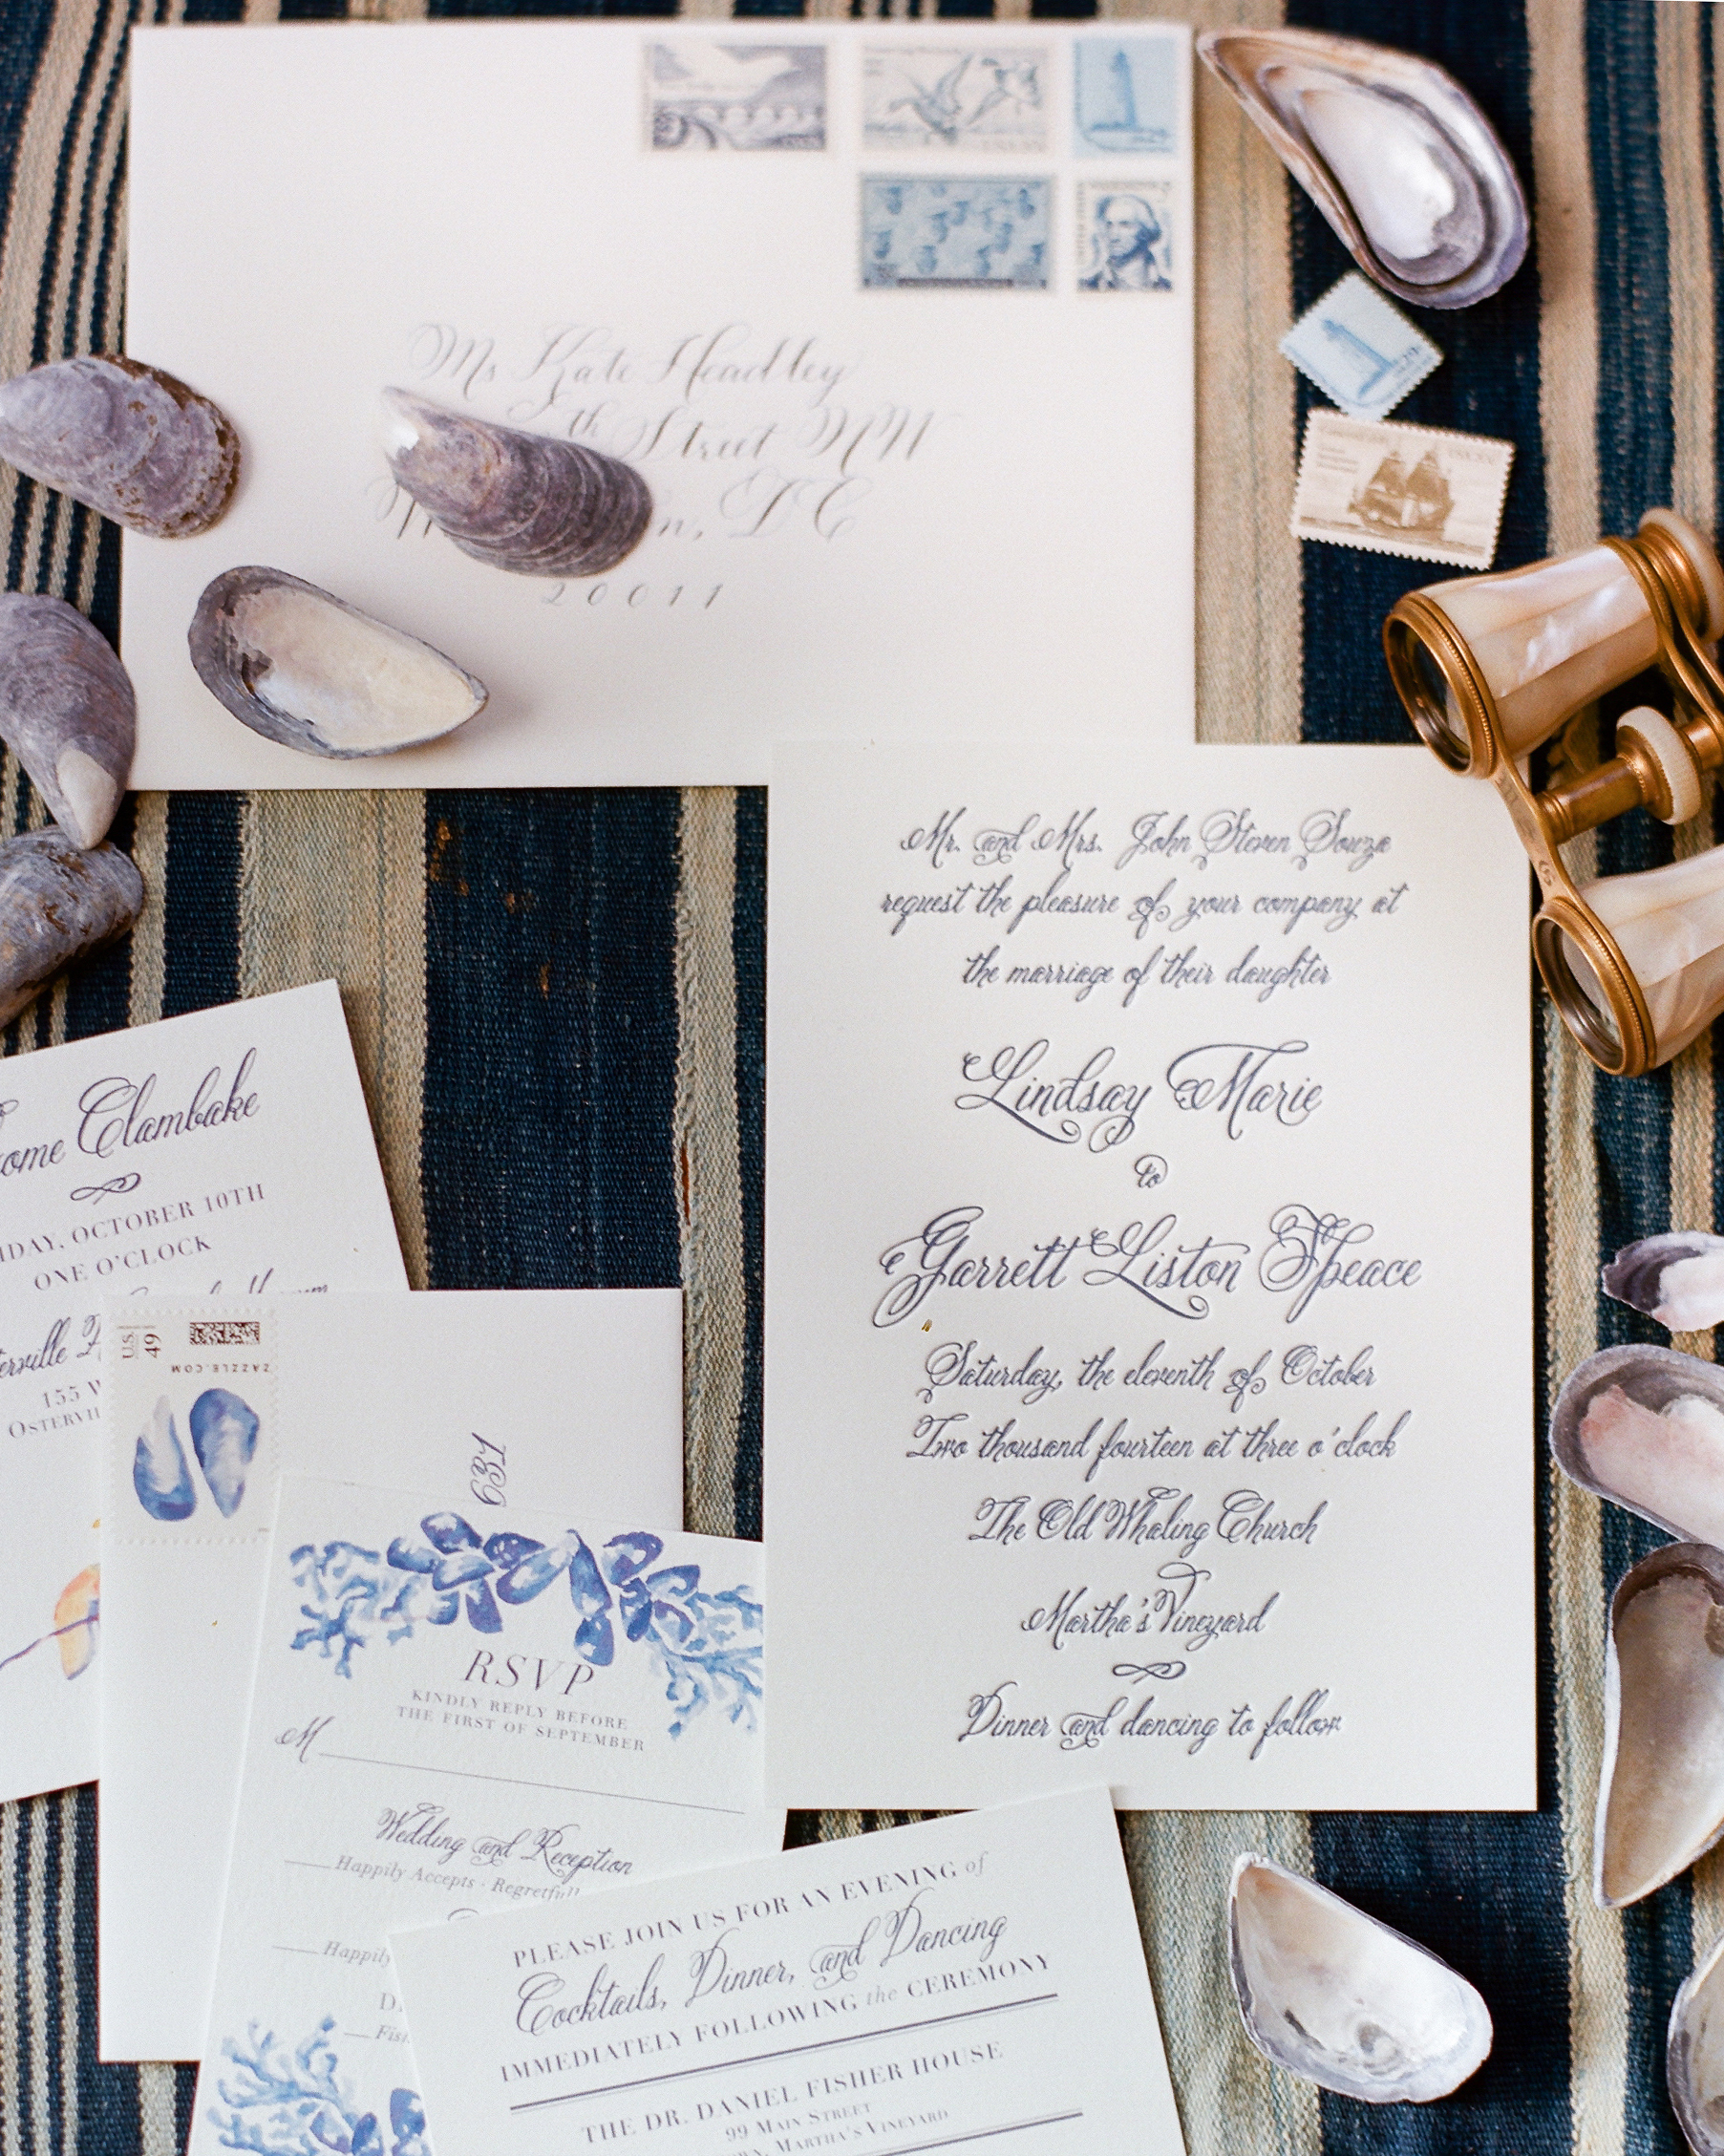 lindsay-garrett-wedding-stationery-0228-s111850-0415.jpg